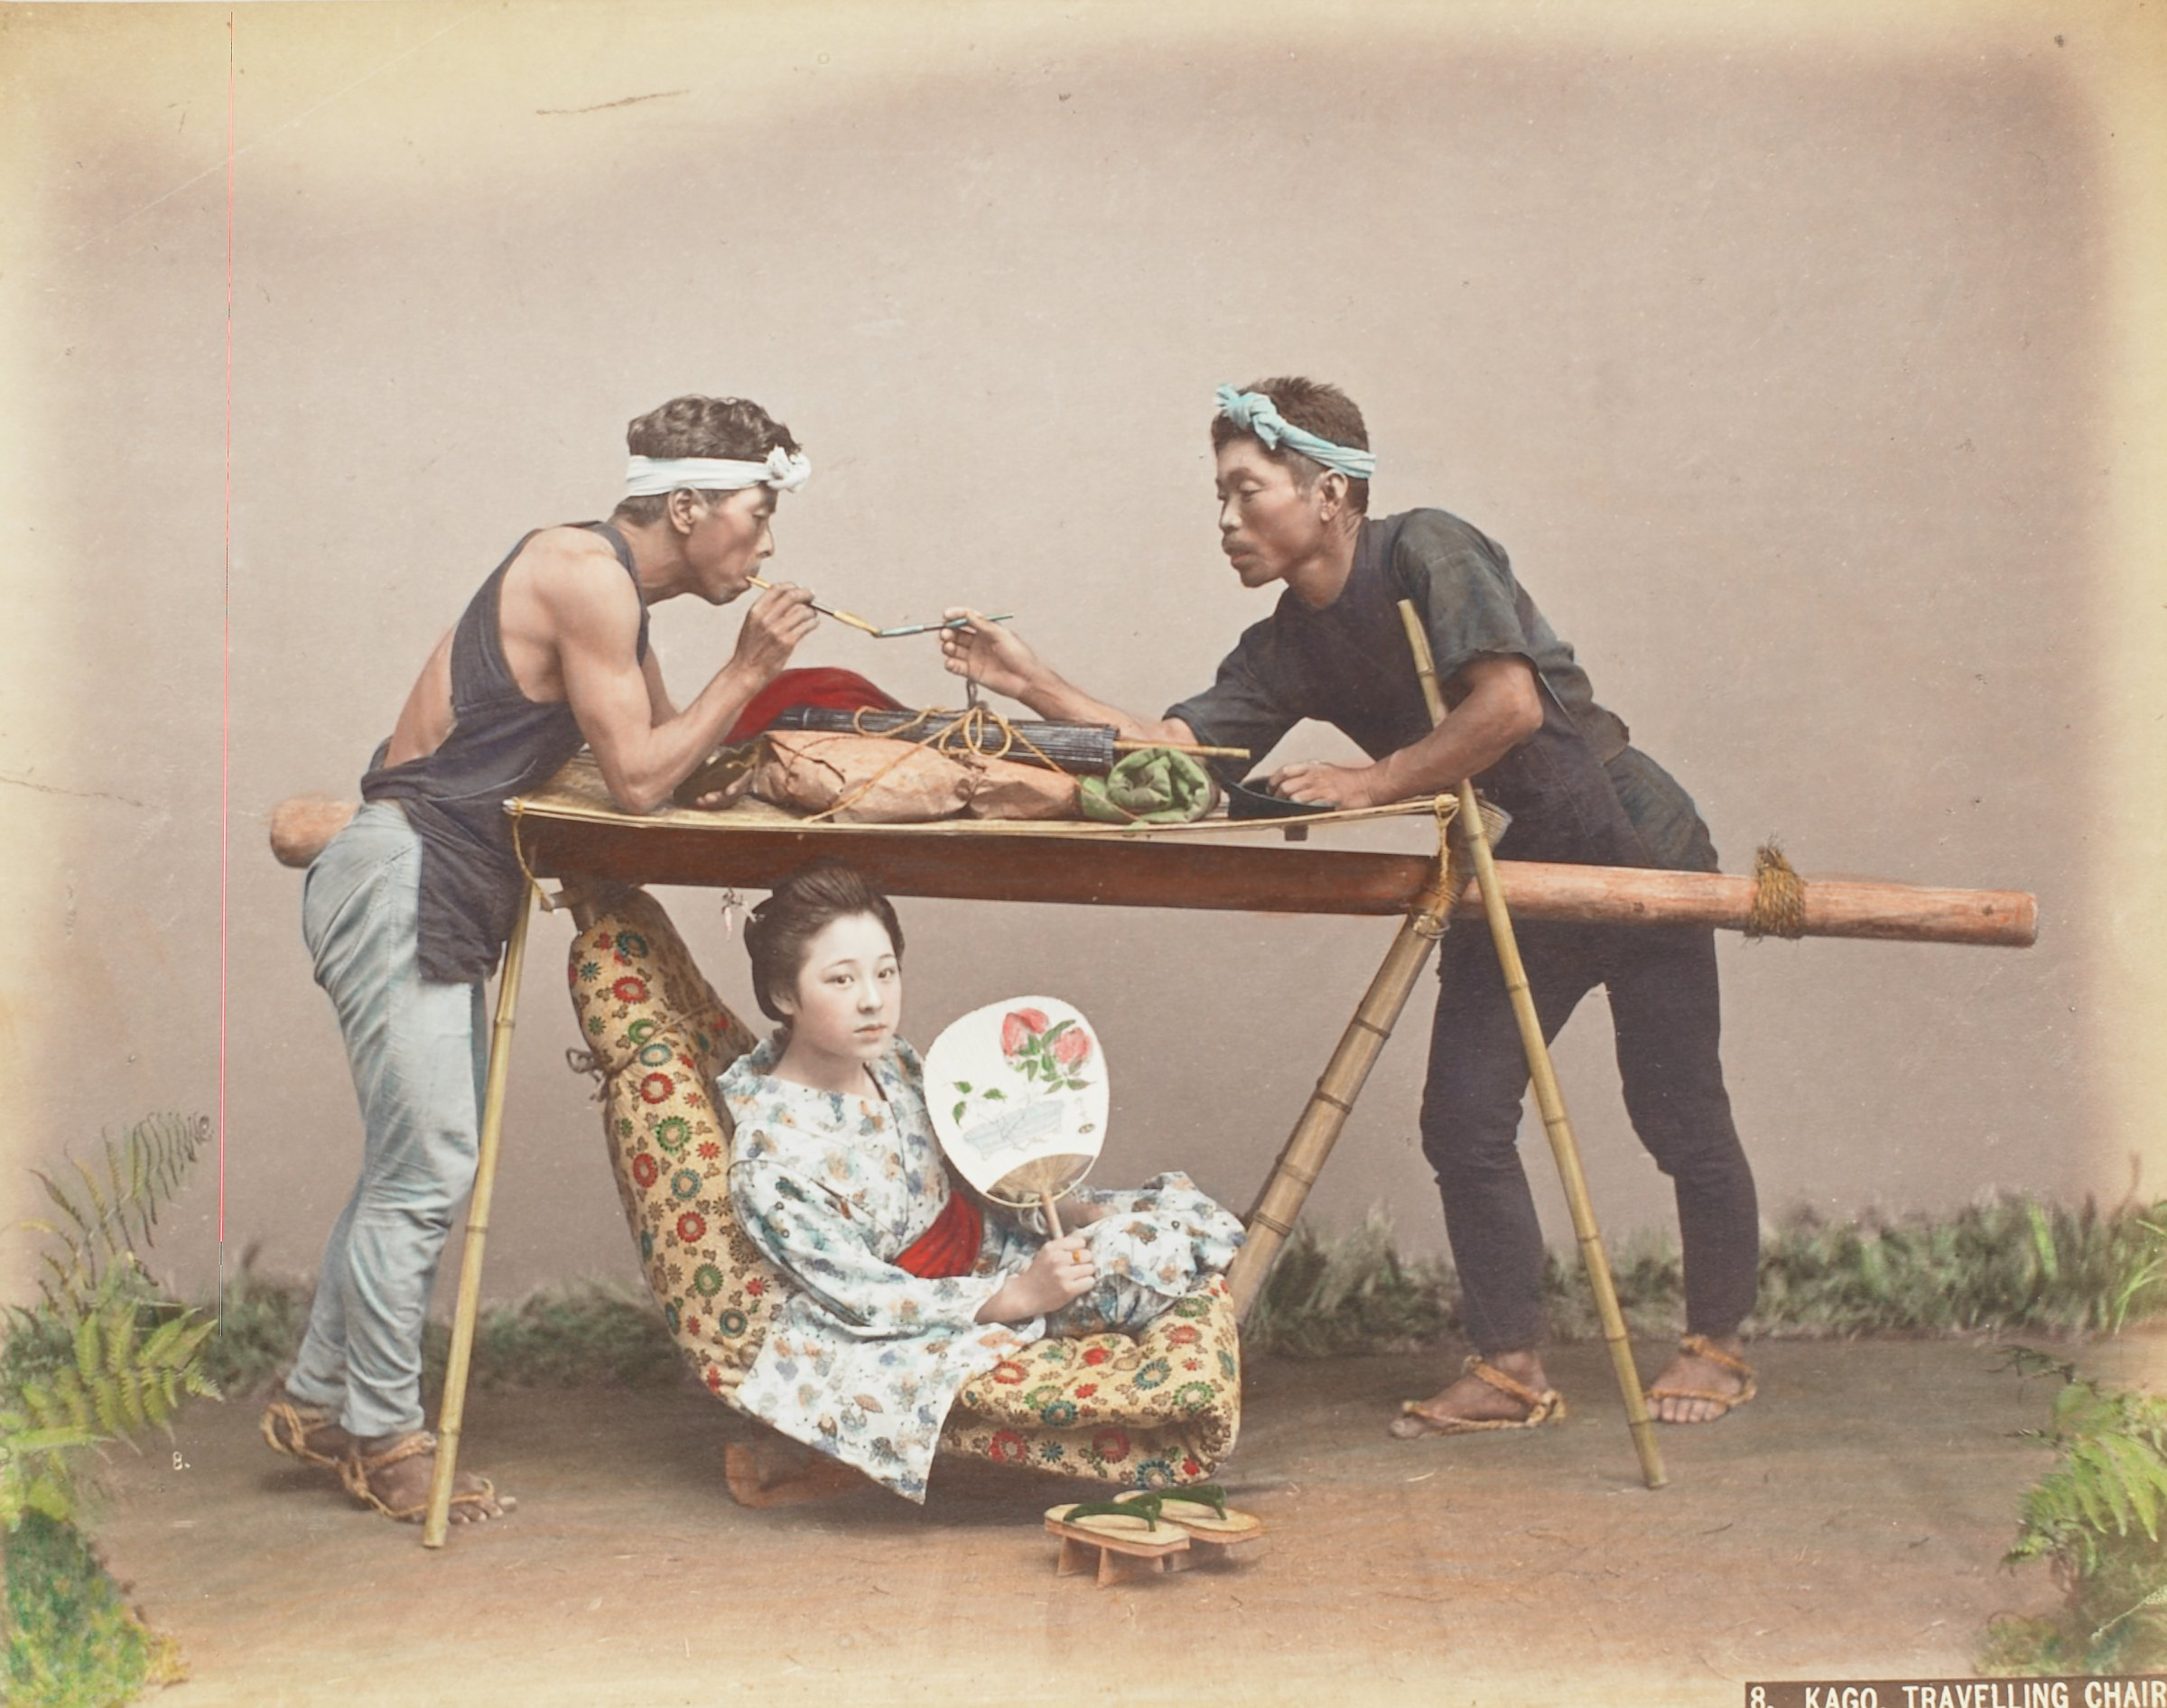 Kago Travelling Chair (.10, recto); Visiting Ceremonials (.11, verso), Attributed to Kusakabe Kimbei, hand-colored albumen prints mounted to album page